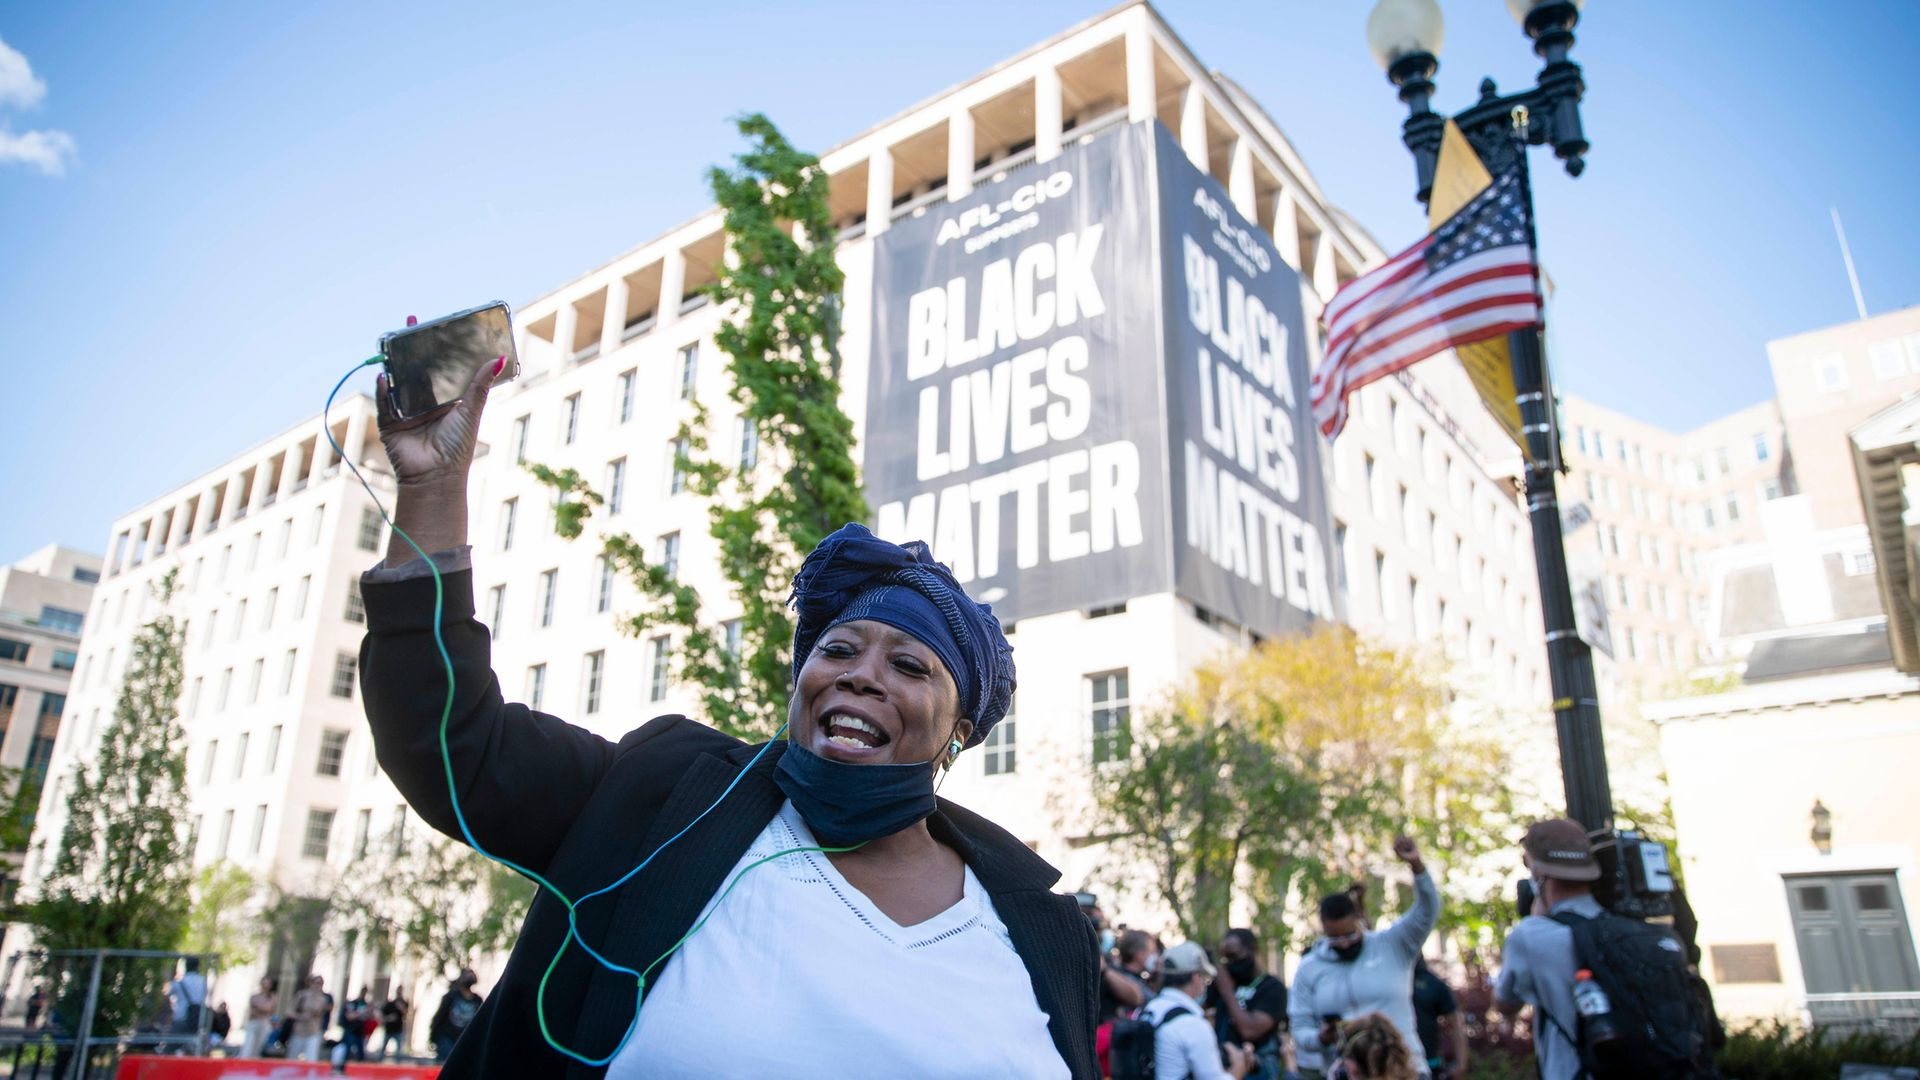 A person celebrates the verdict of the Derek Chauvin trial at Black Lives Matter Plaza near the White House - Credit: Getty Images